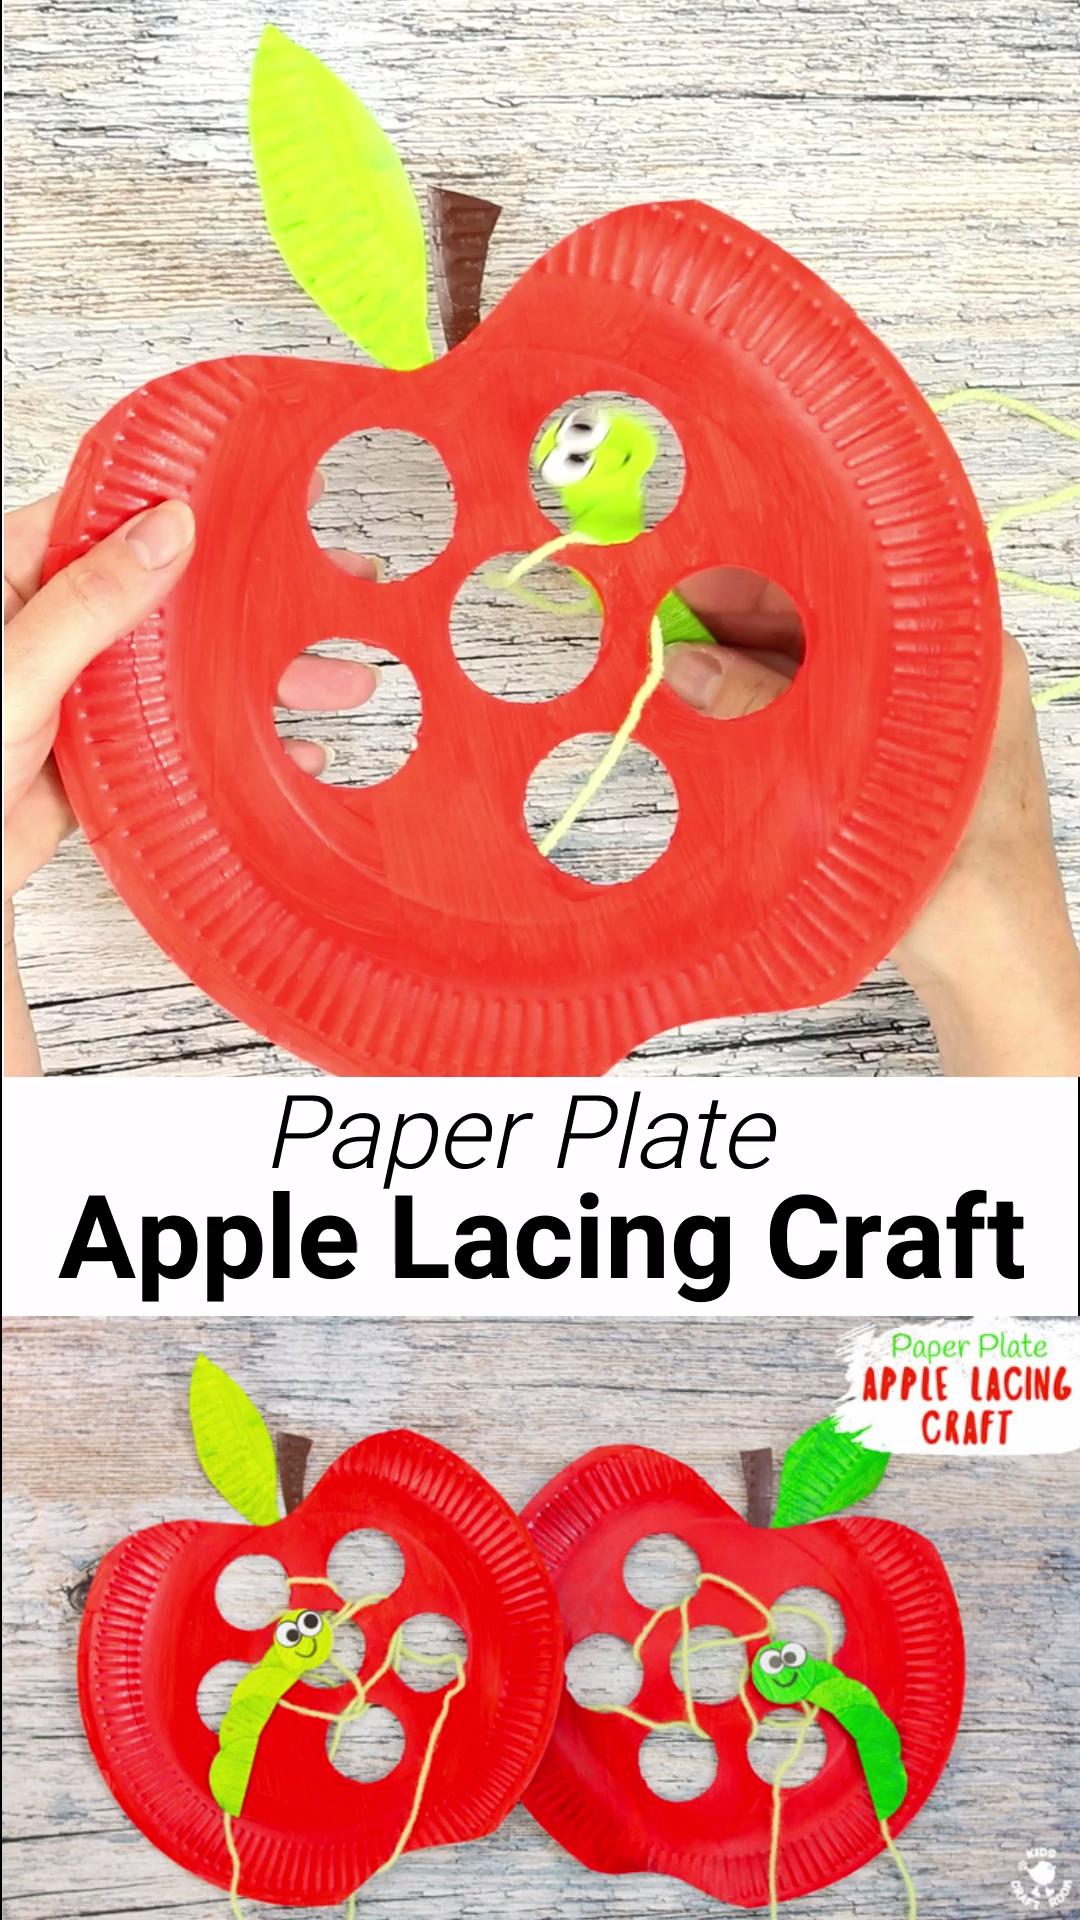 Paper Plate Apple Lacing Craft is part of Kids craft room, Preschool crafts, Fall crafts for kids, Fun crafts for kids, Crafts for kids, Toddler crafts - This interactive Paper Plate Apple Lacing Craft is adorable with the cutest worm for kids to thread in and out! What a fun way to build fine motor skills